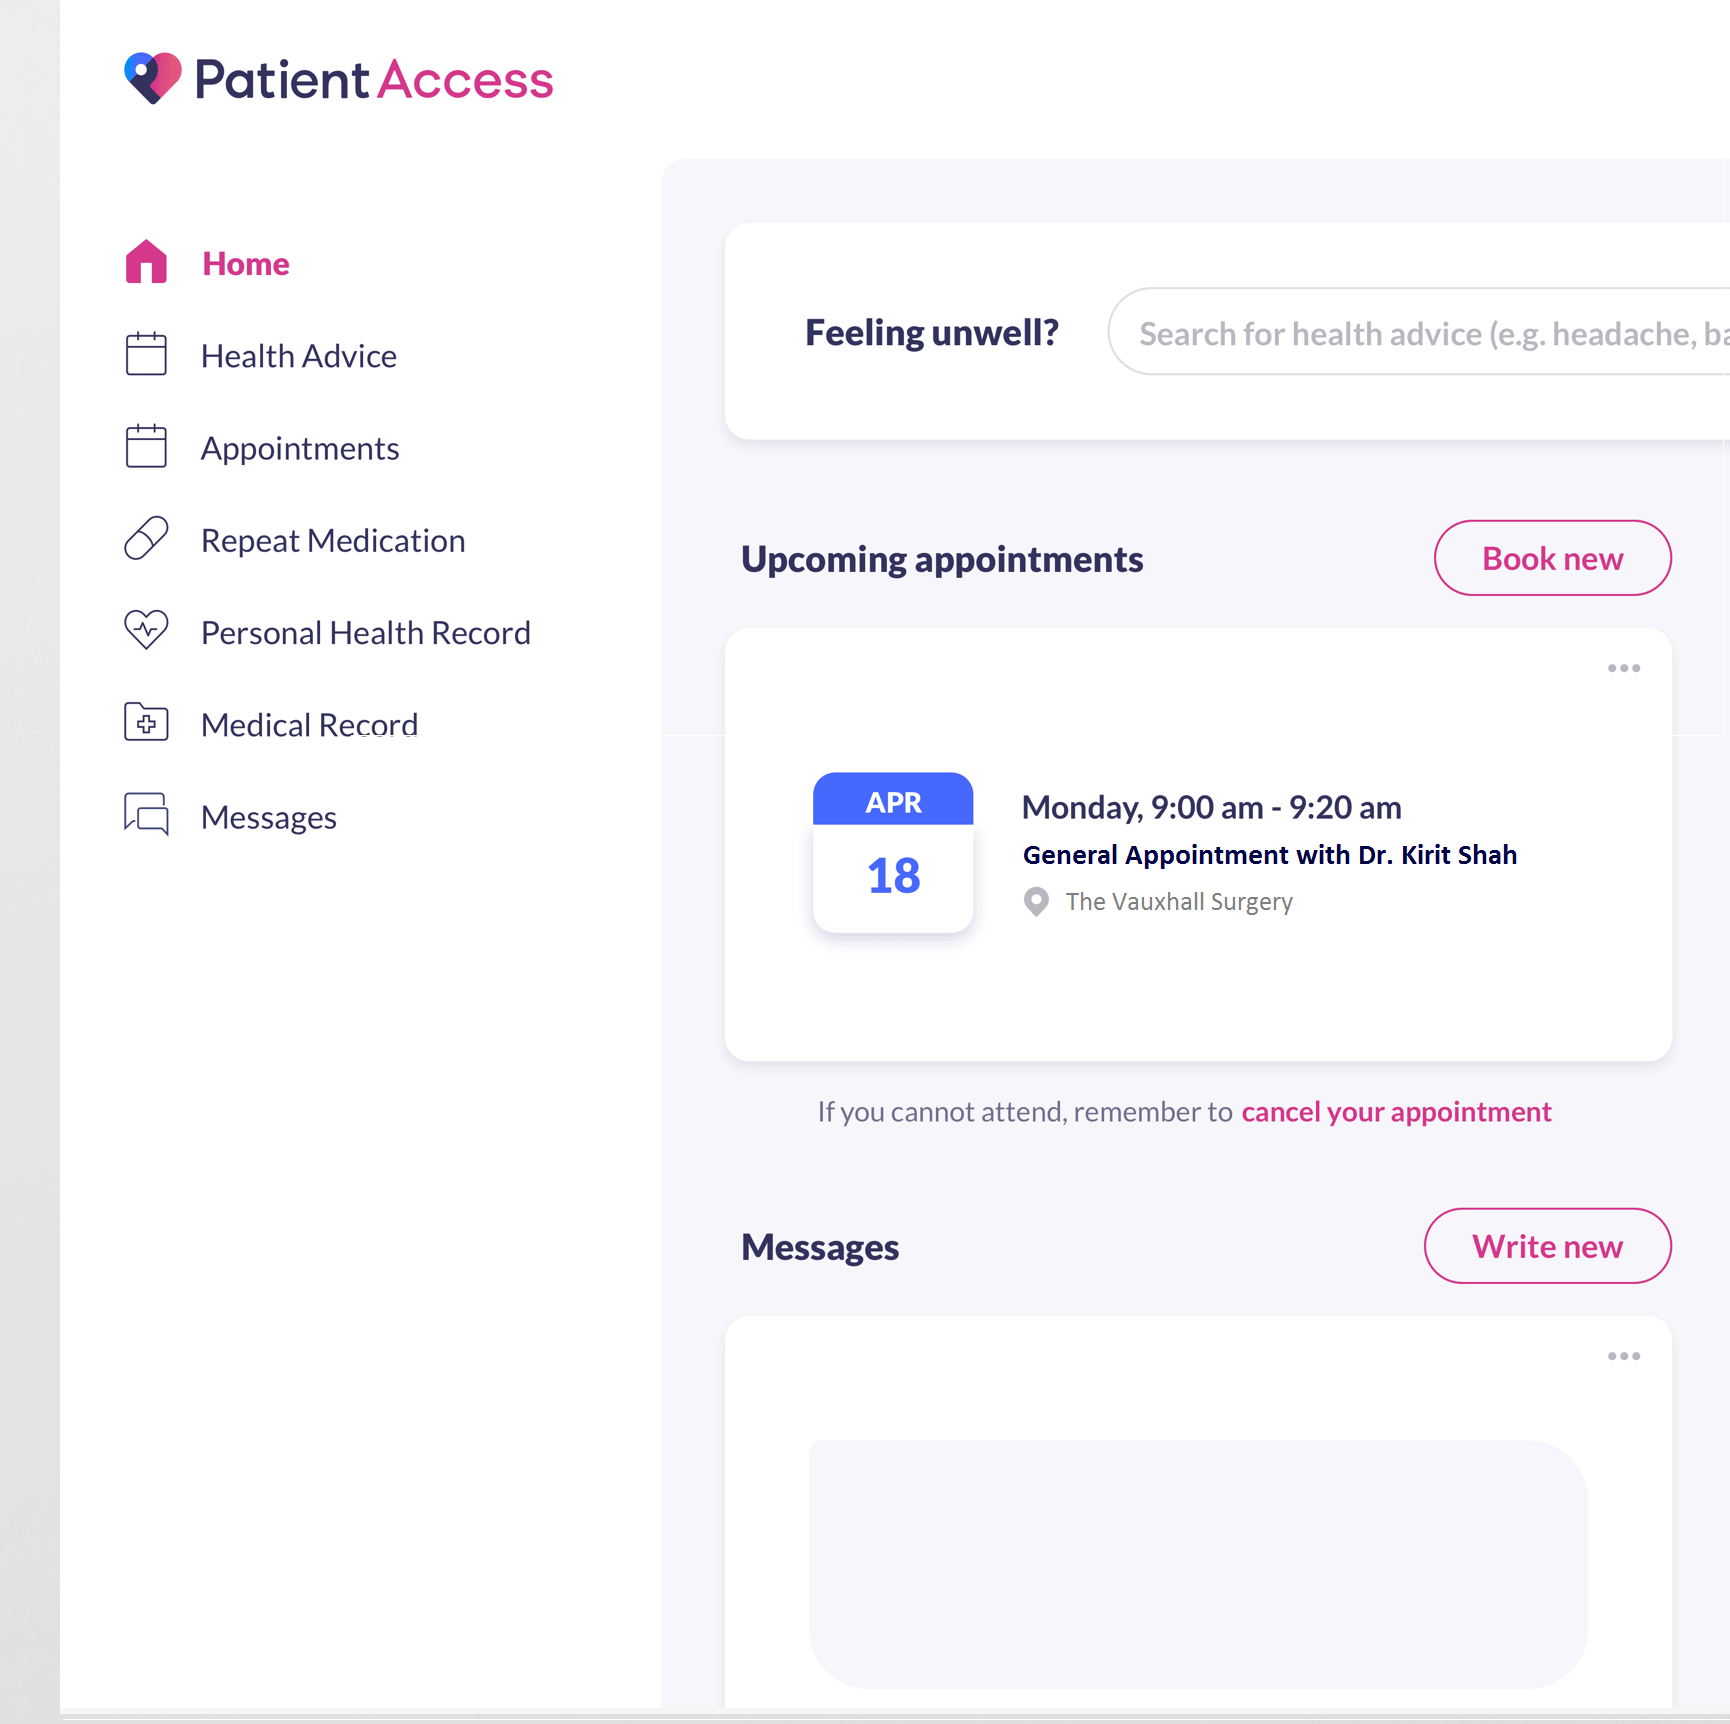 Overview of Patient Access